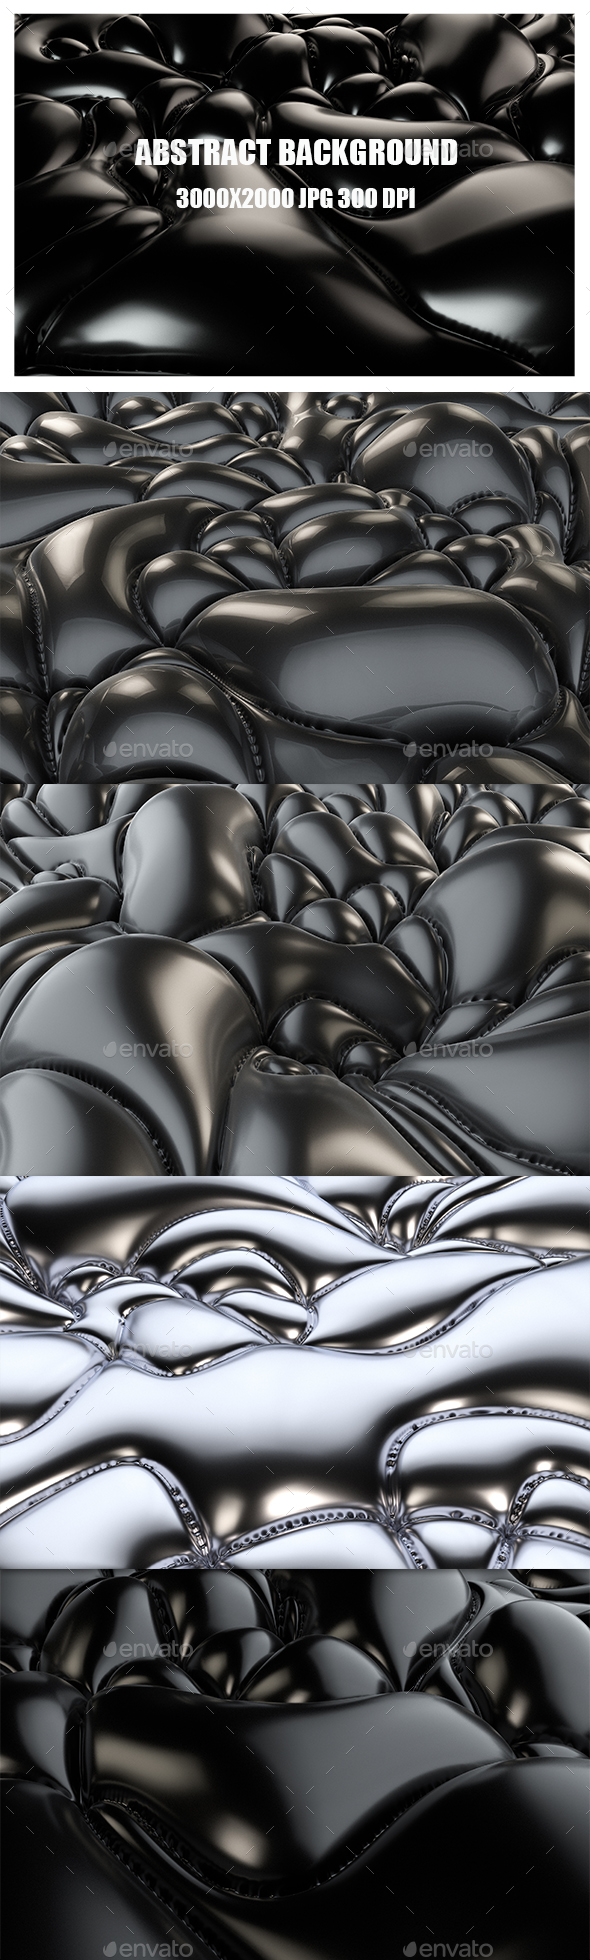 Abstract Background 5 - Abstract Backgrounds